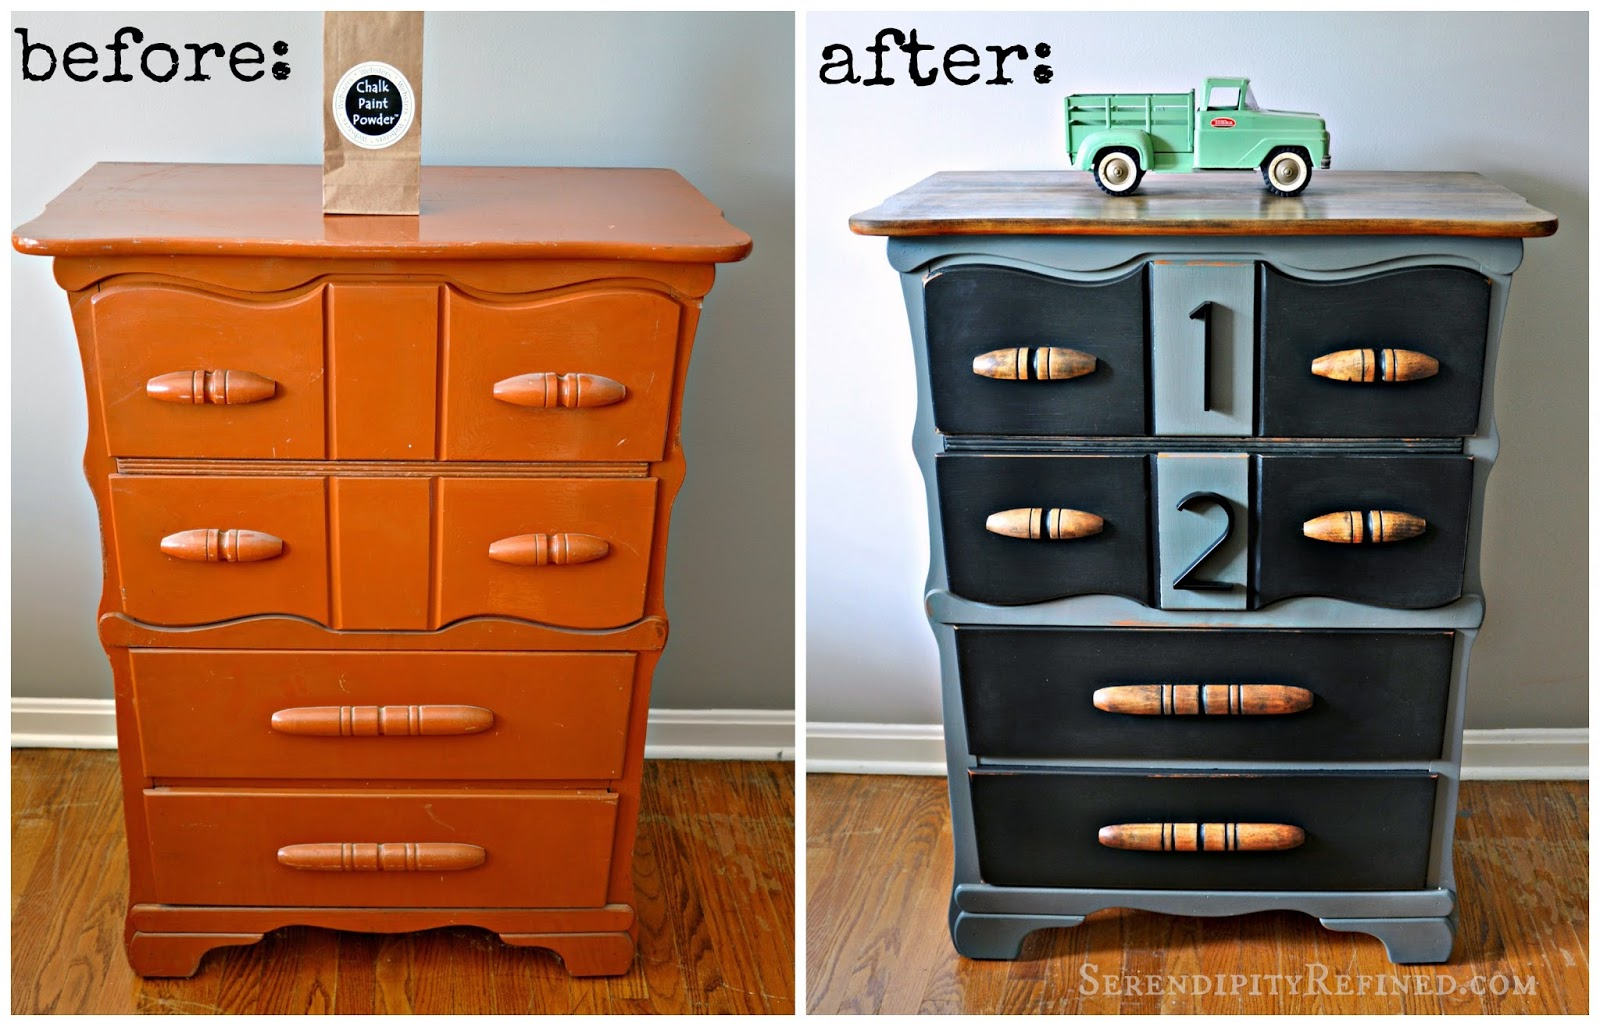 Painting furniture black before and after - Finishing